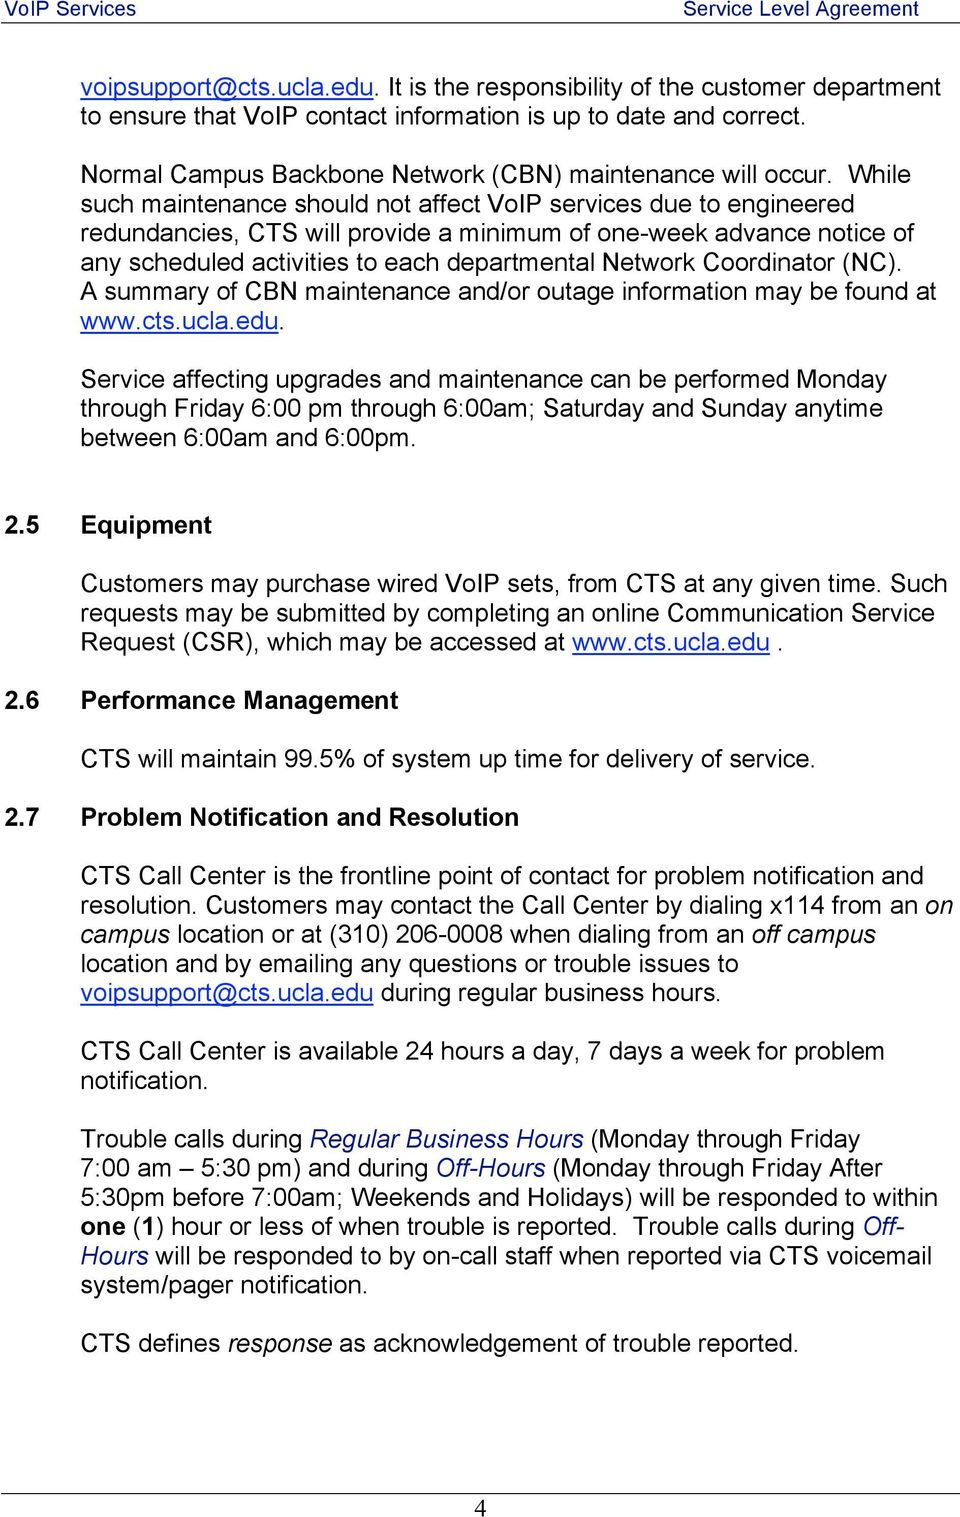 While such maintenance should not affect VoIP services due to engineered redundancies, CTS will provide a minimum of one-week advance notice of any scheduled activities to each departmental Network